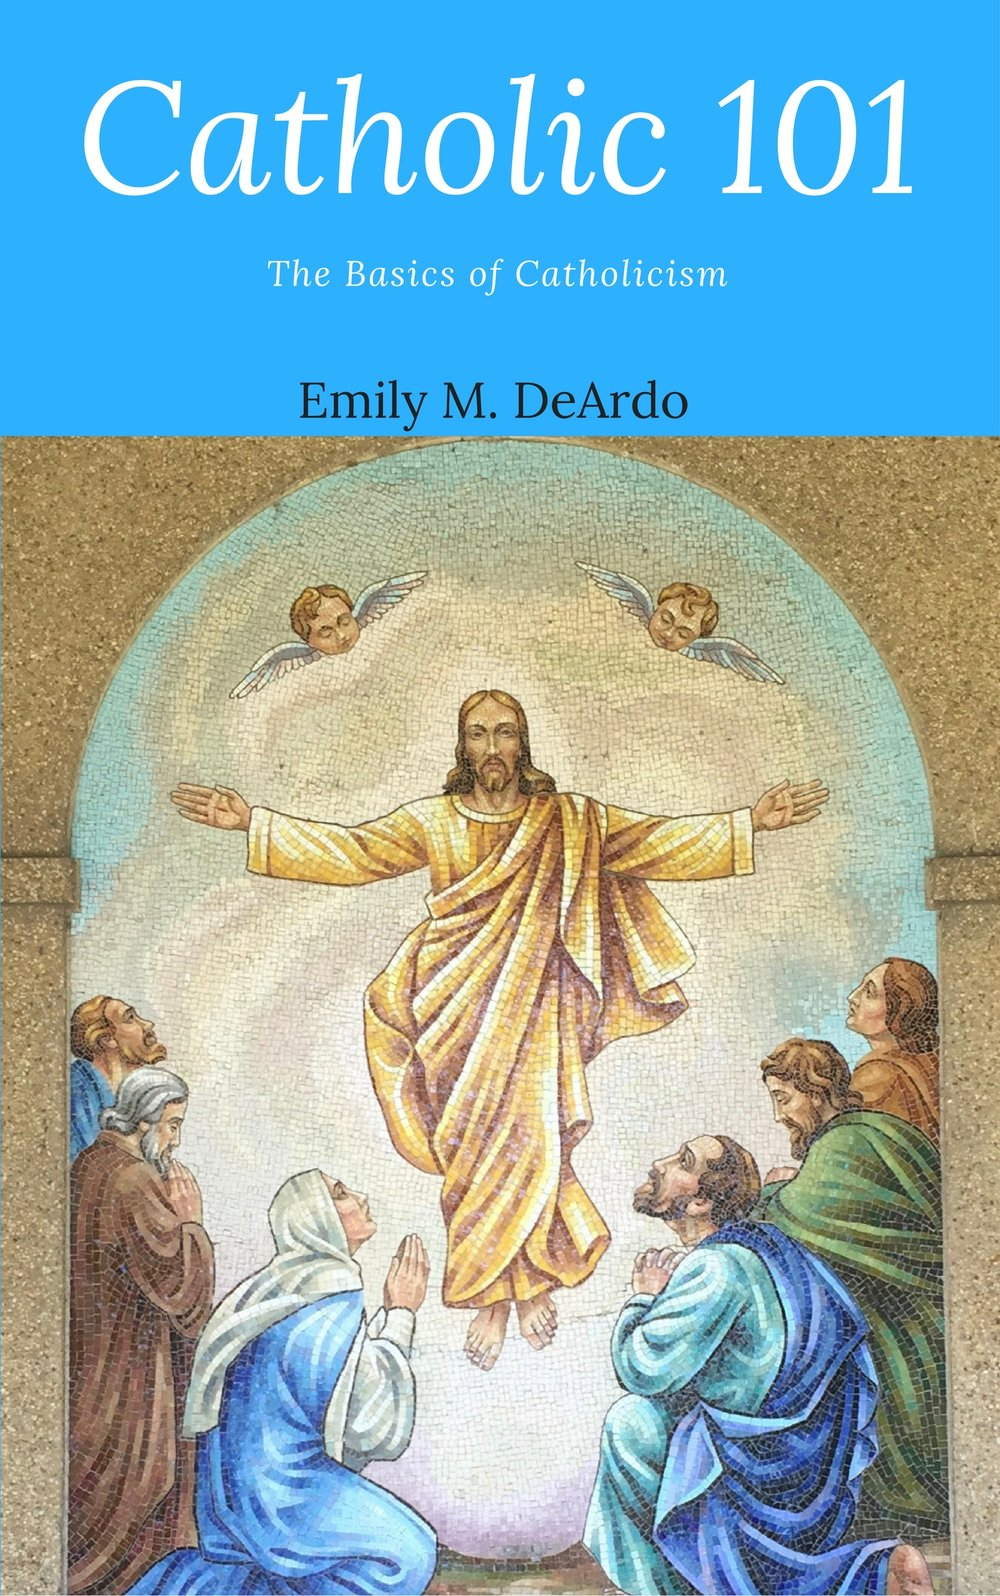 Catholic 101, my ebook, is now avaliable for pre order! Click the image!